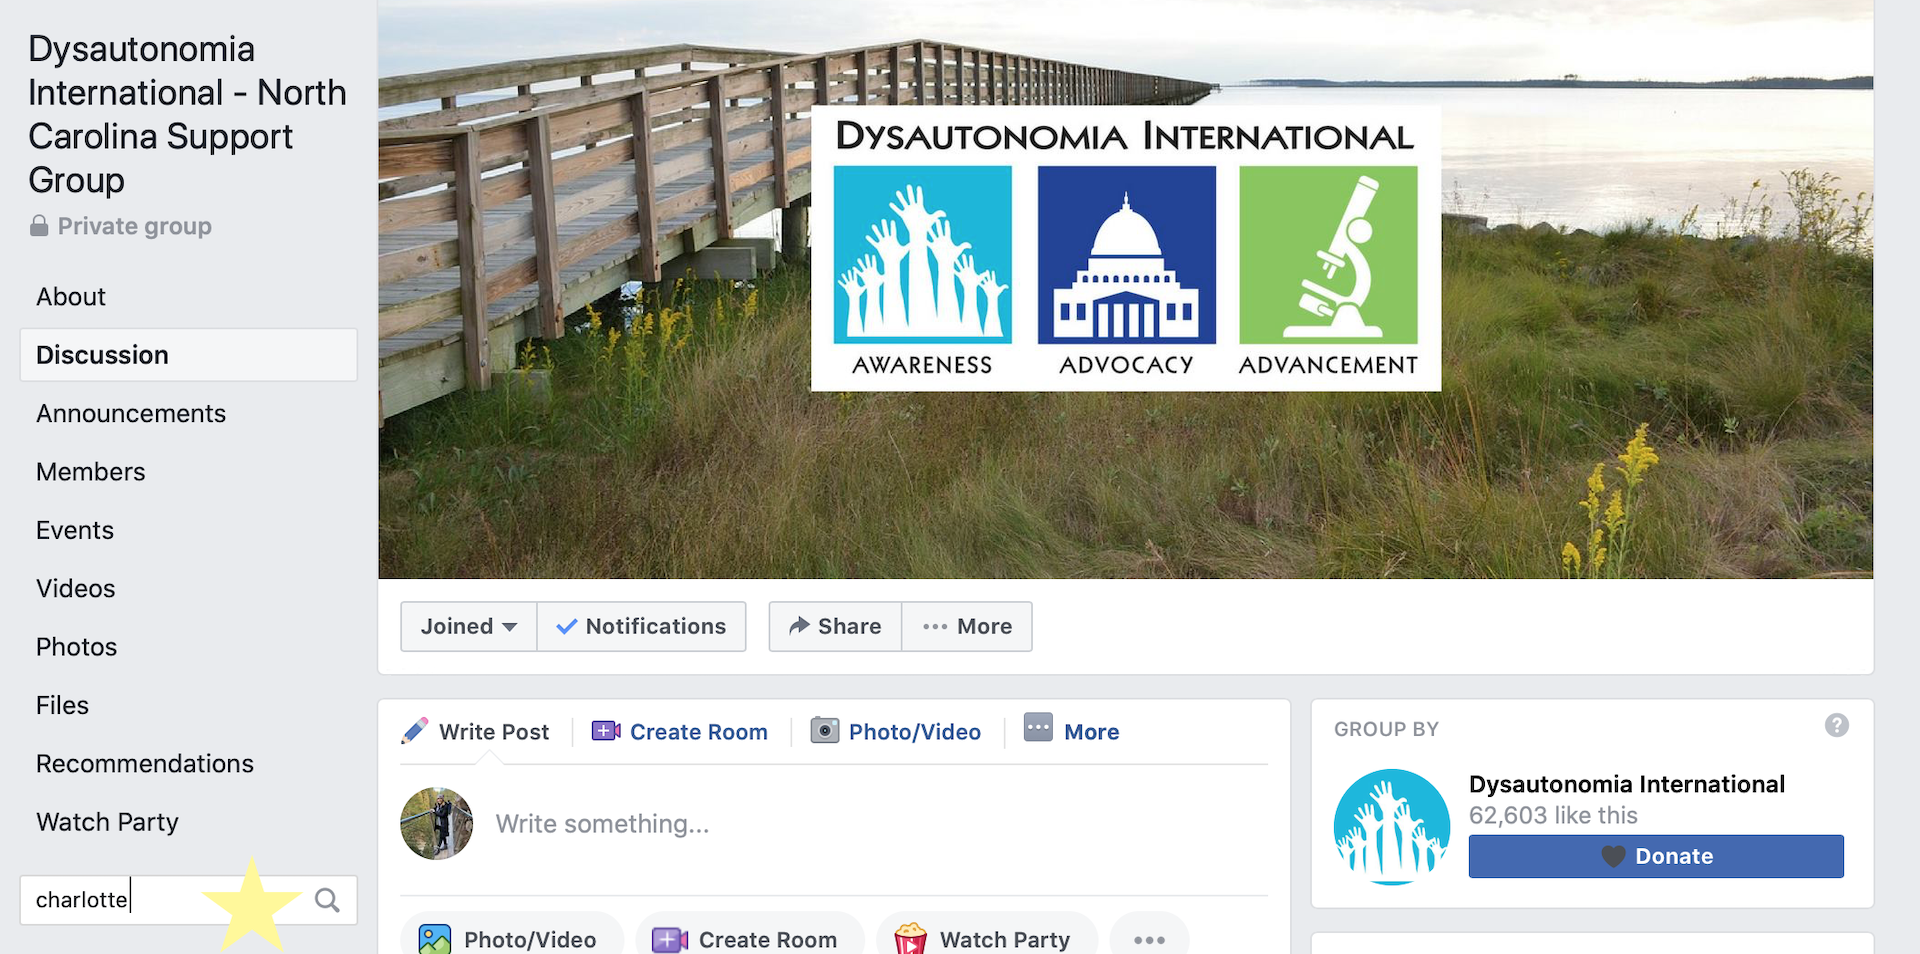 facebook group home page for dysautonomia international support group